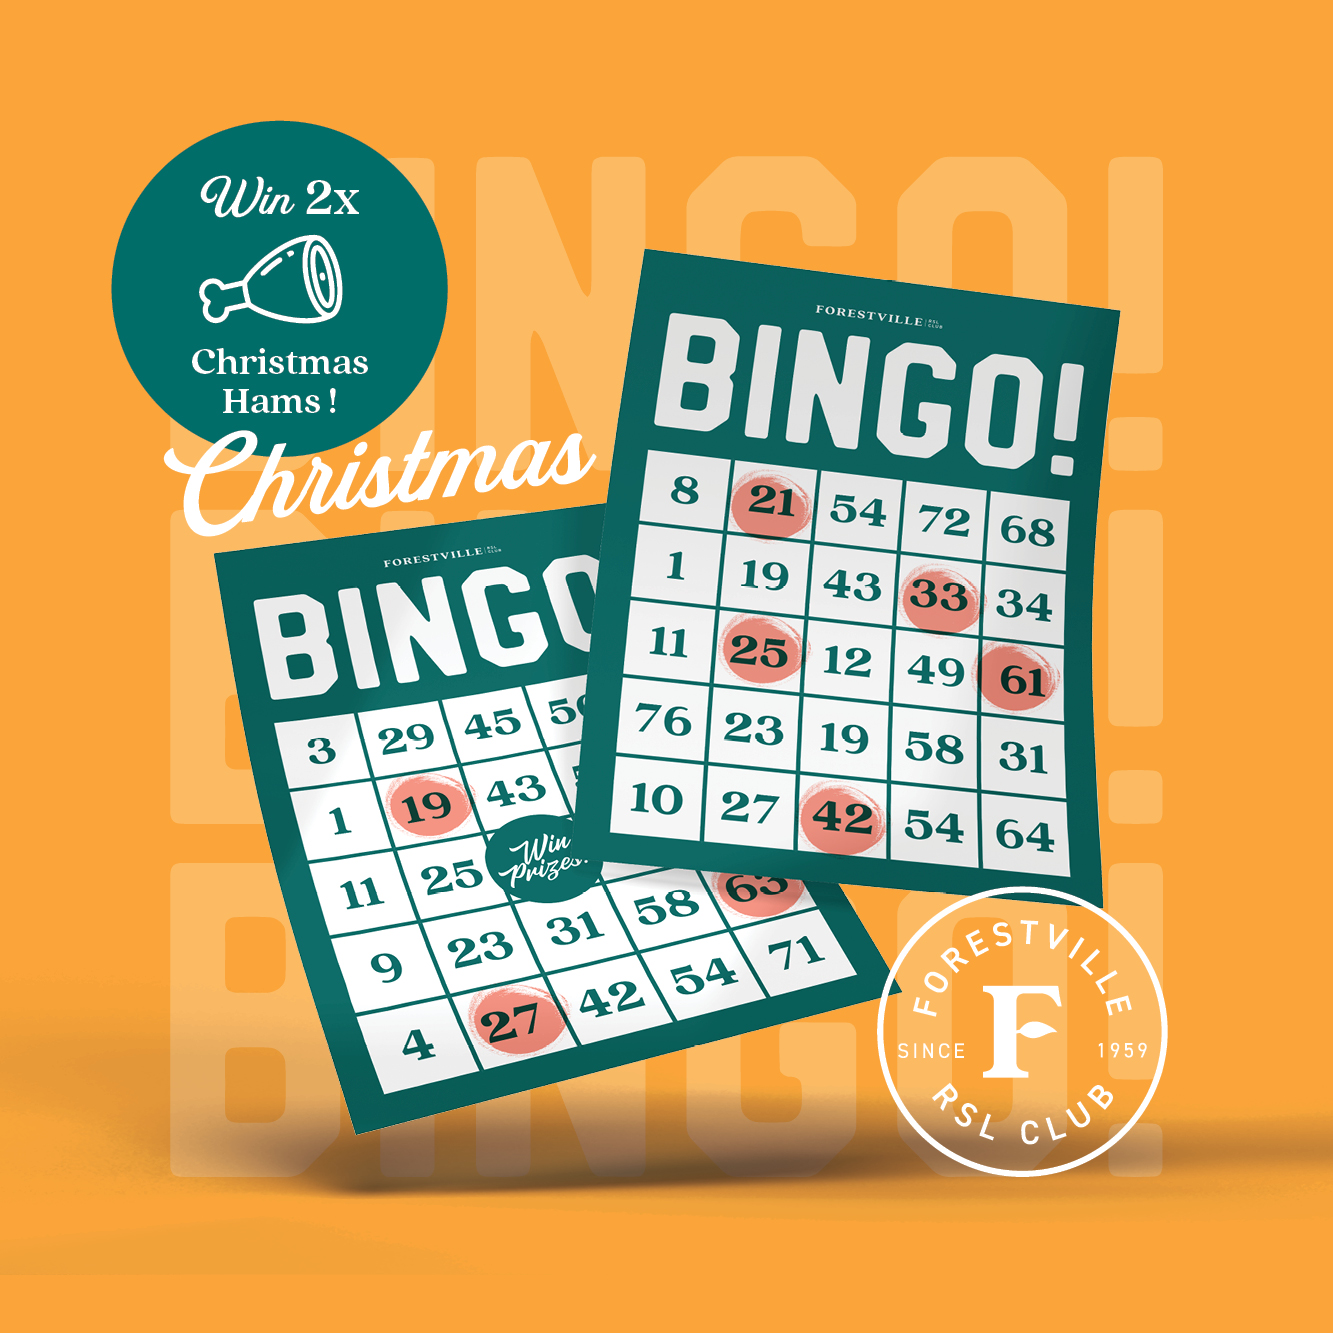 Join us for Bingo this December where we will be adding some Christmas cheer!